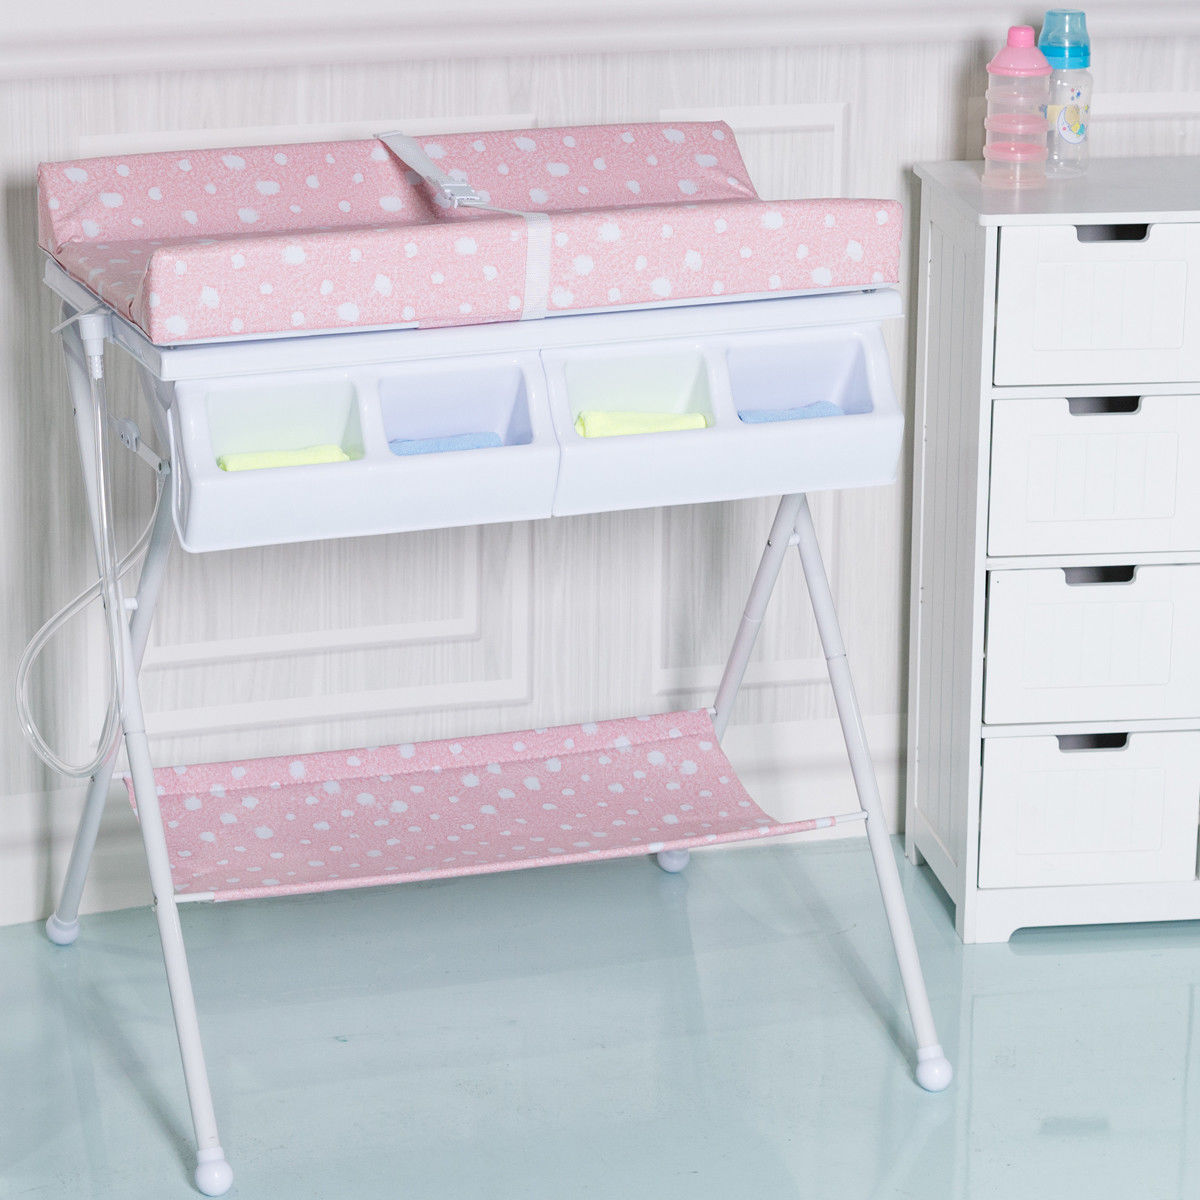 Costway Infant Baby Bath Changing Table Diaper Station Storage Organizer - image 8 of 8